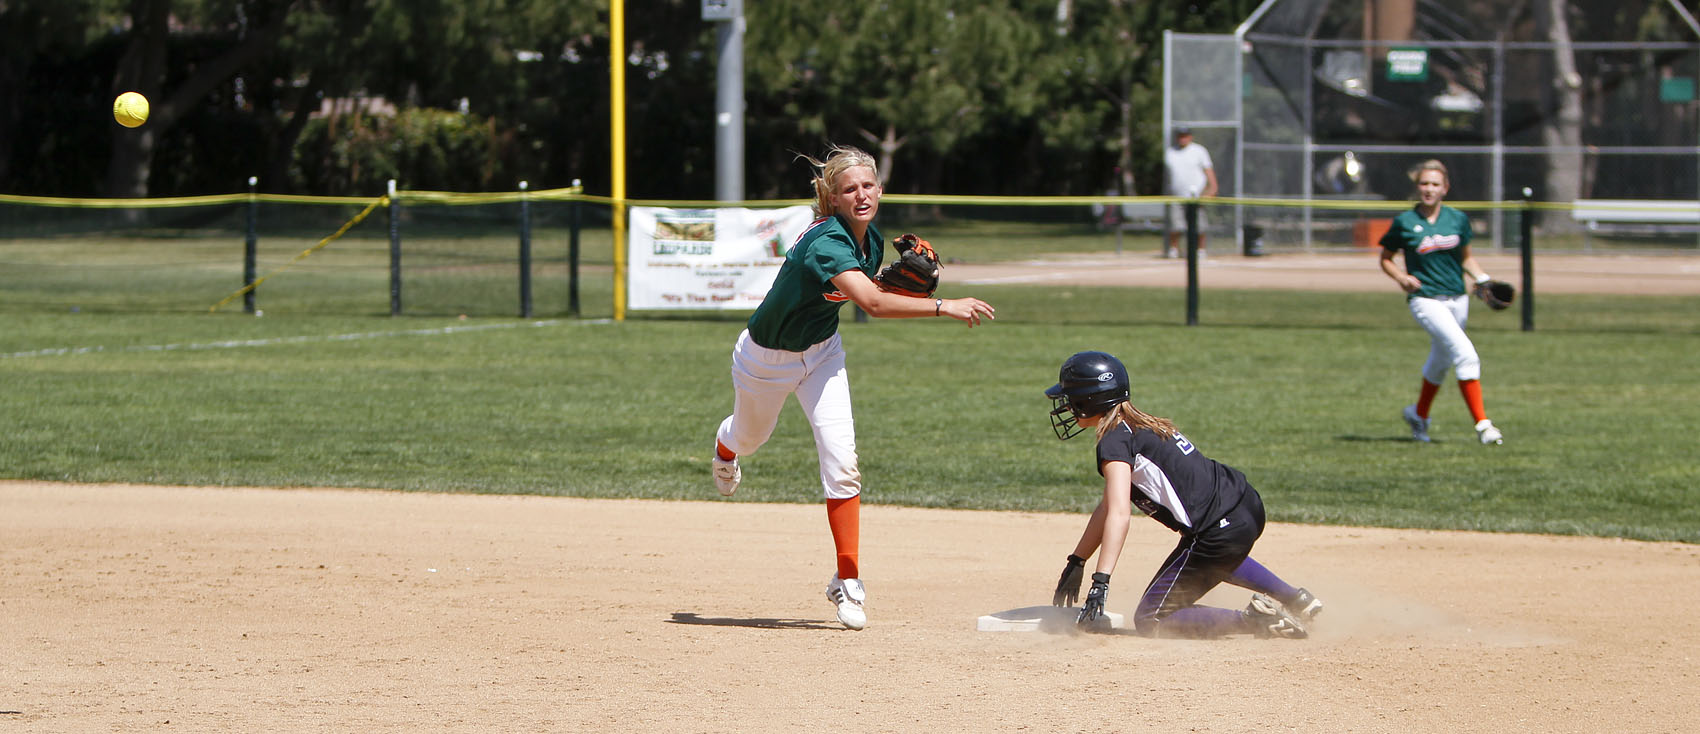 After tagging out Kelsey Luedtke, second baseman for the St. Catherine Wildcats, Ashley Paul attempts a double play but the throw to first is late. The Leopards declawed the Wildcats in both games Sunday, 10-0 and 7-1. The Leopards will play a doubleheader against the Sagehens at Pomona-Pitzer on Saturday beginning at noon./ photo by Rafael Anguiano